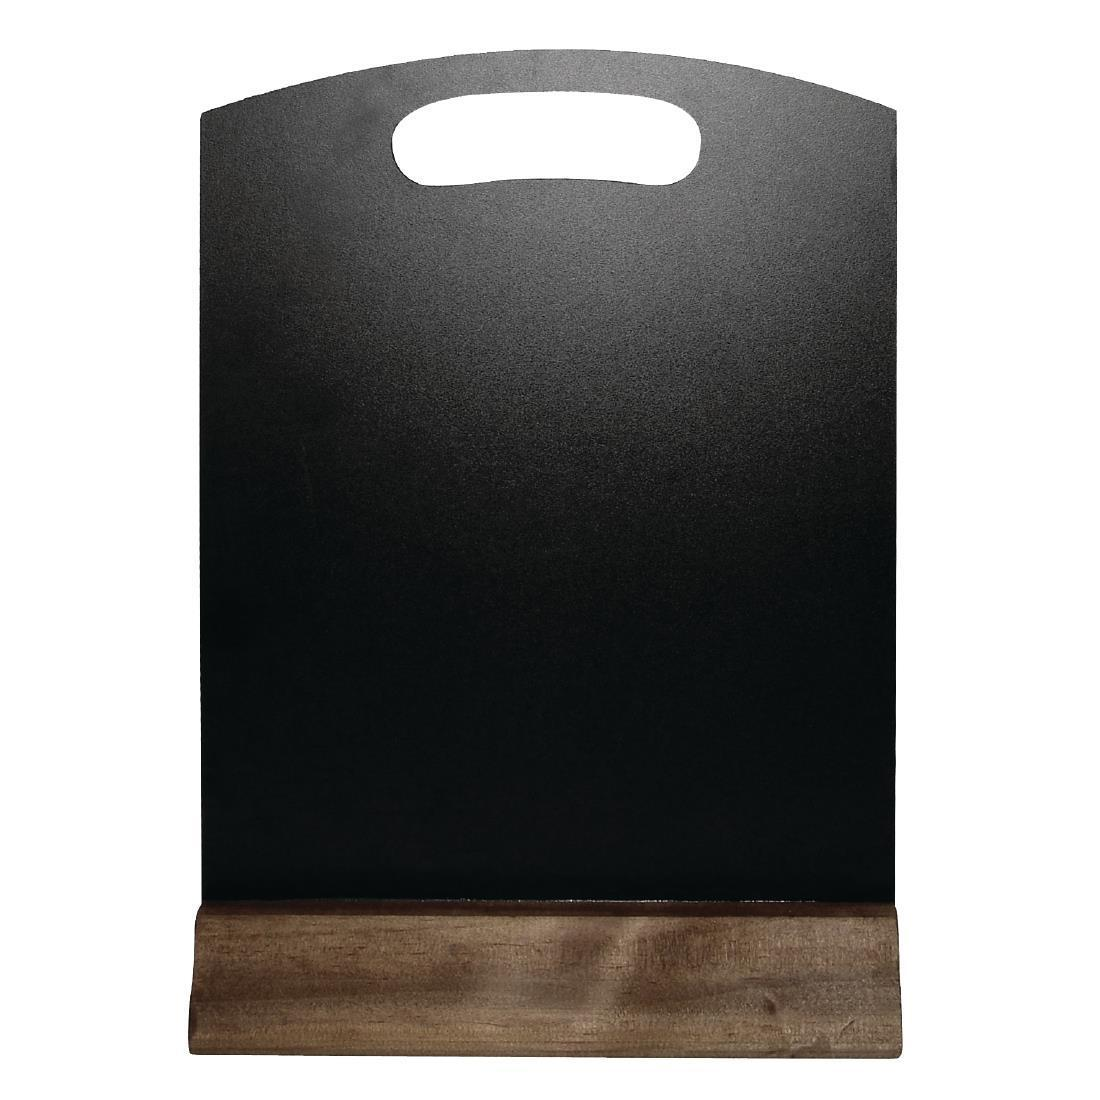 Olympia Freestanding Table Top Blackboard 315 x 212mm